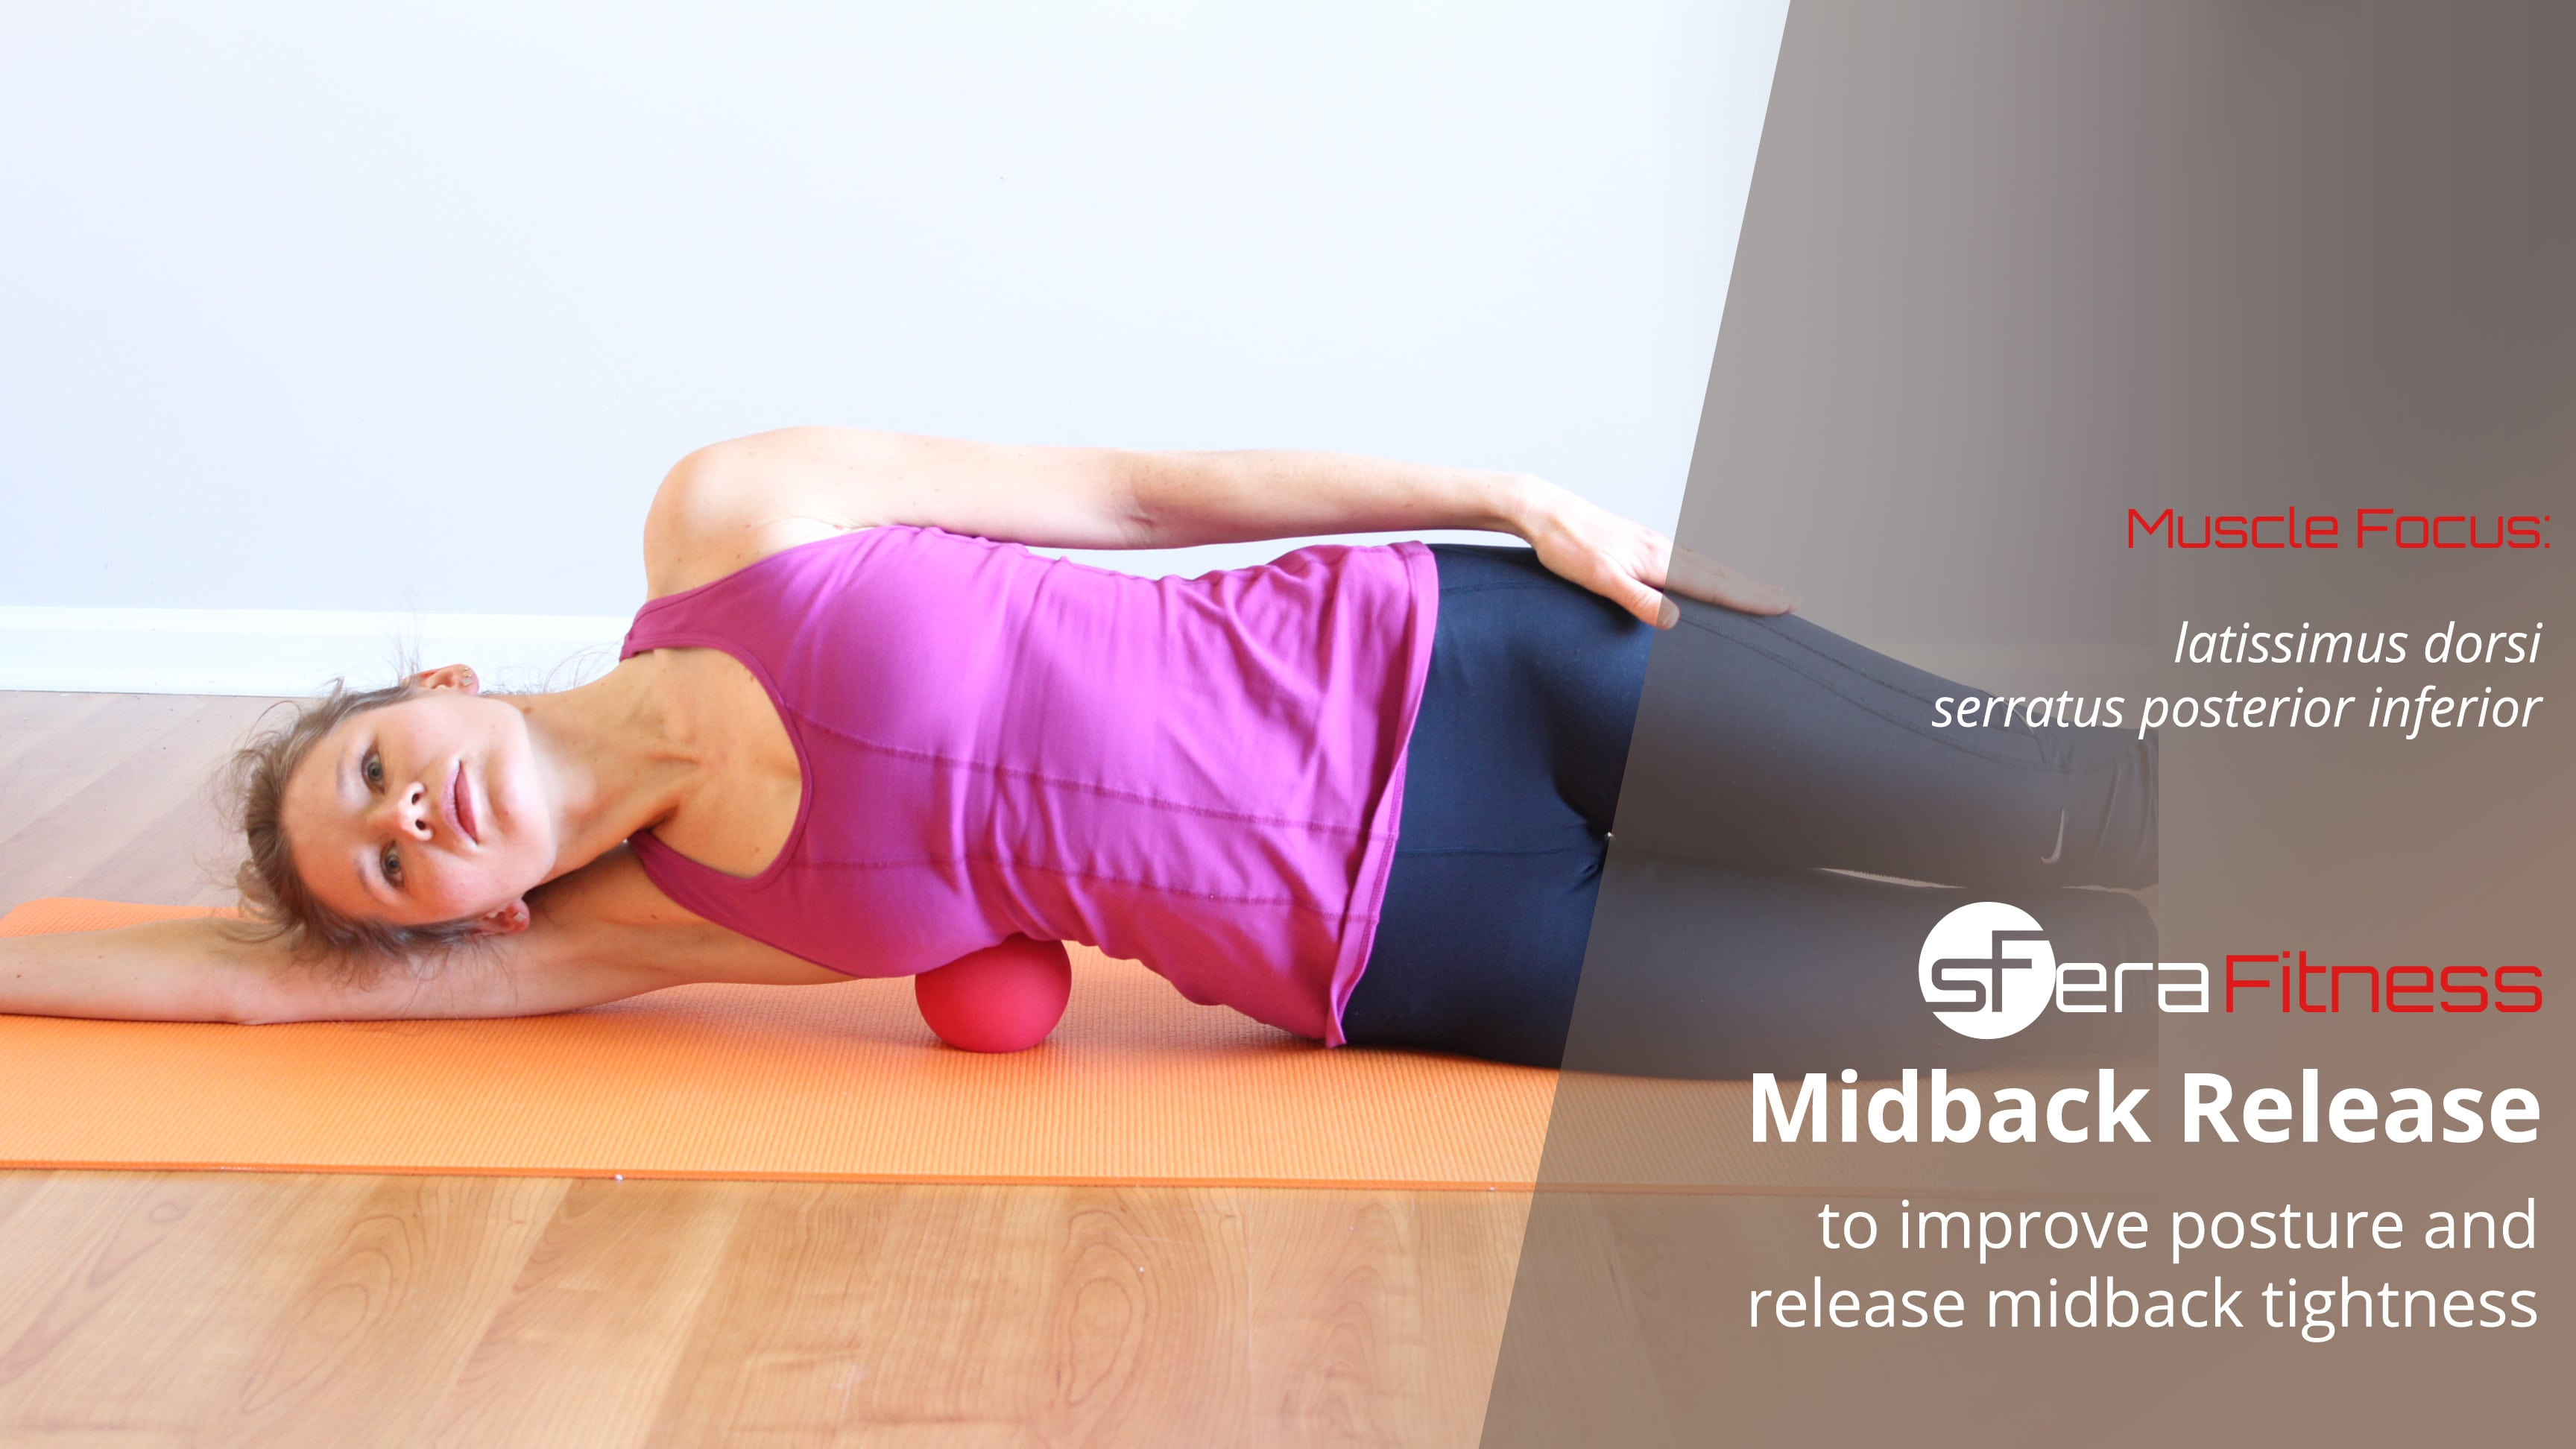 Midback (Lats) and Side Release to Improve Posture and Mobility